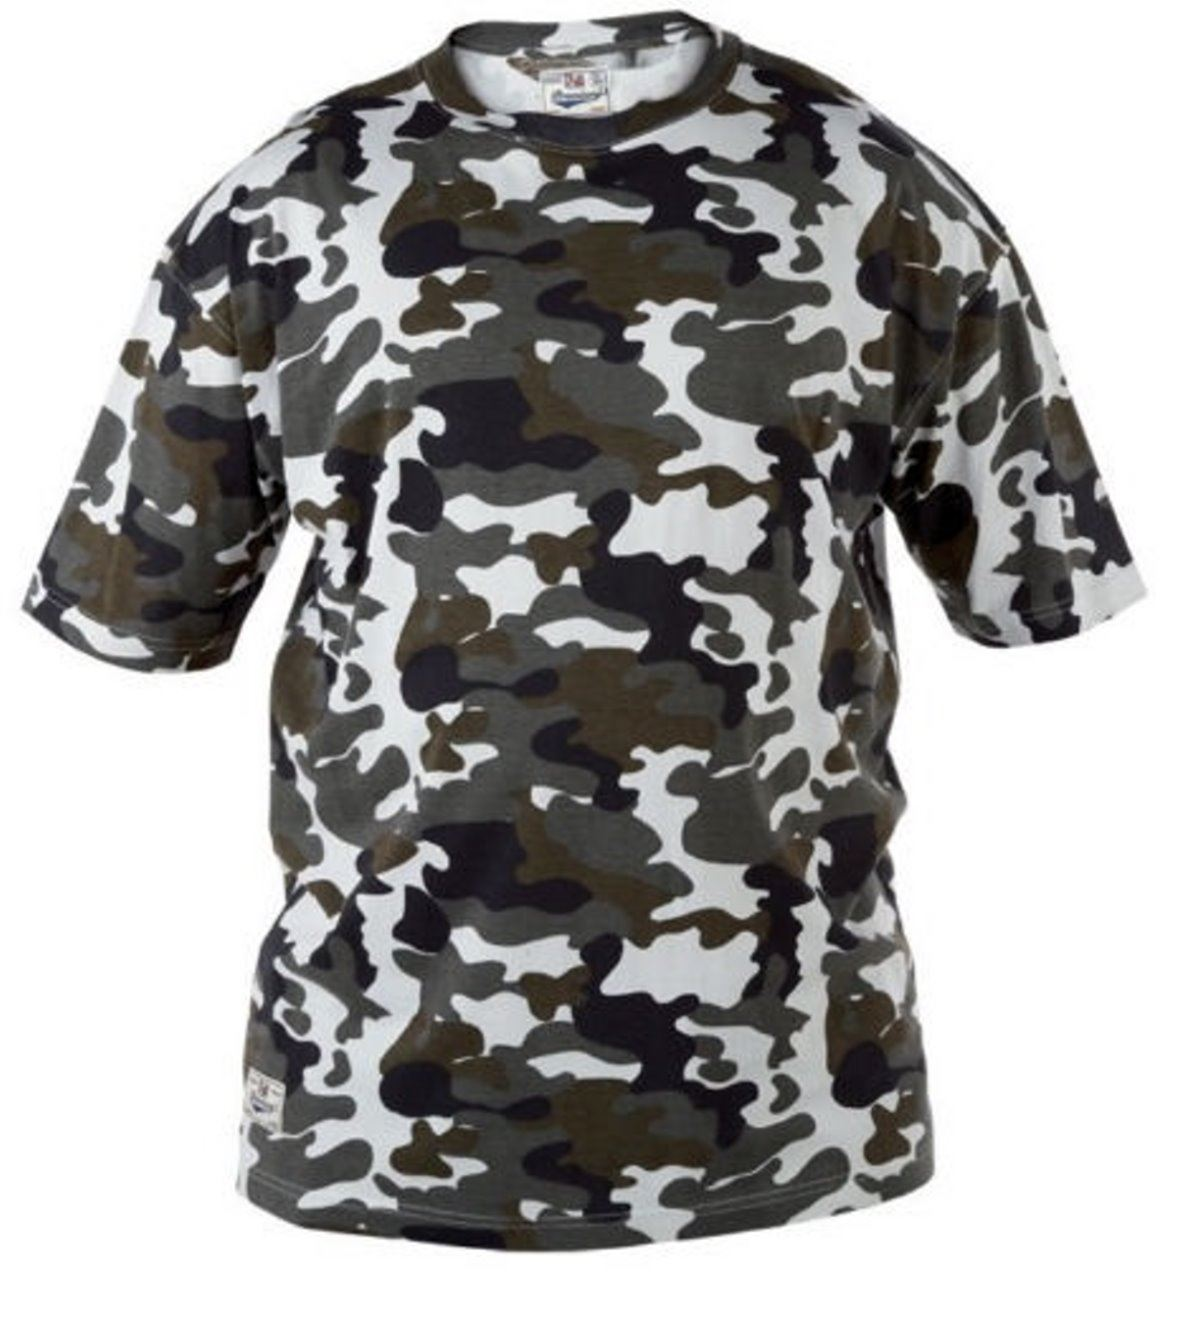 Mens King Size Camo T Shirt Camouflage Tee Big Clothing